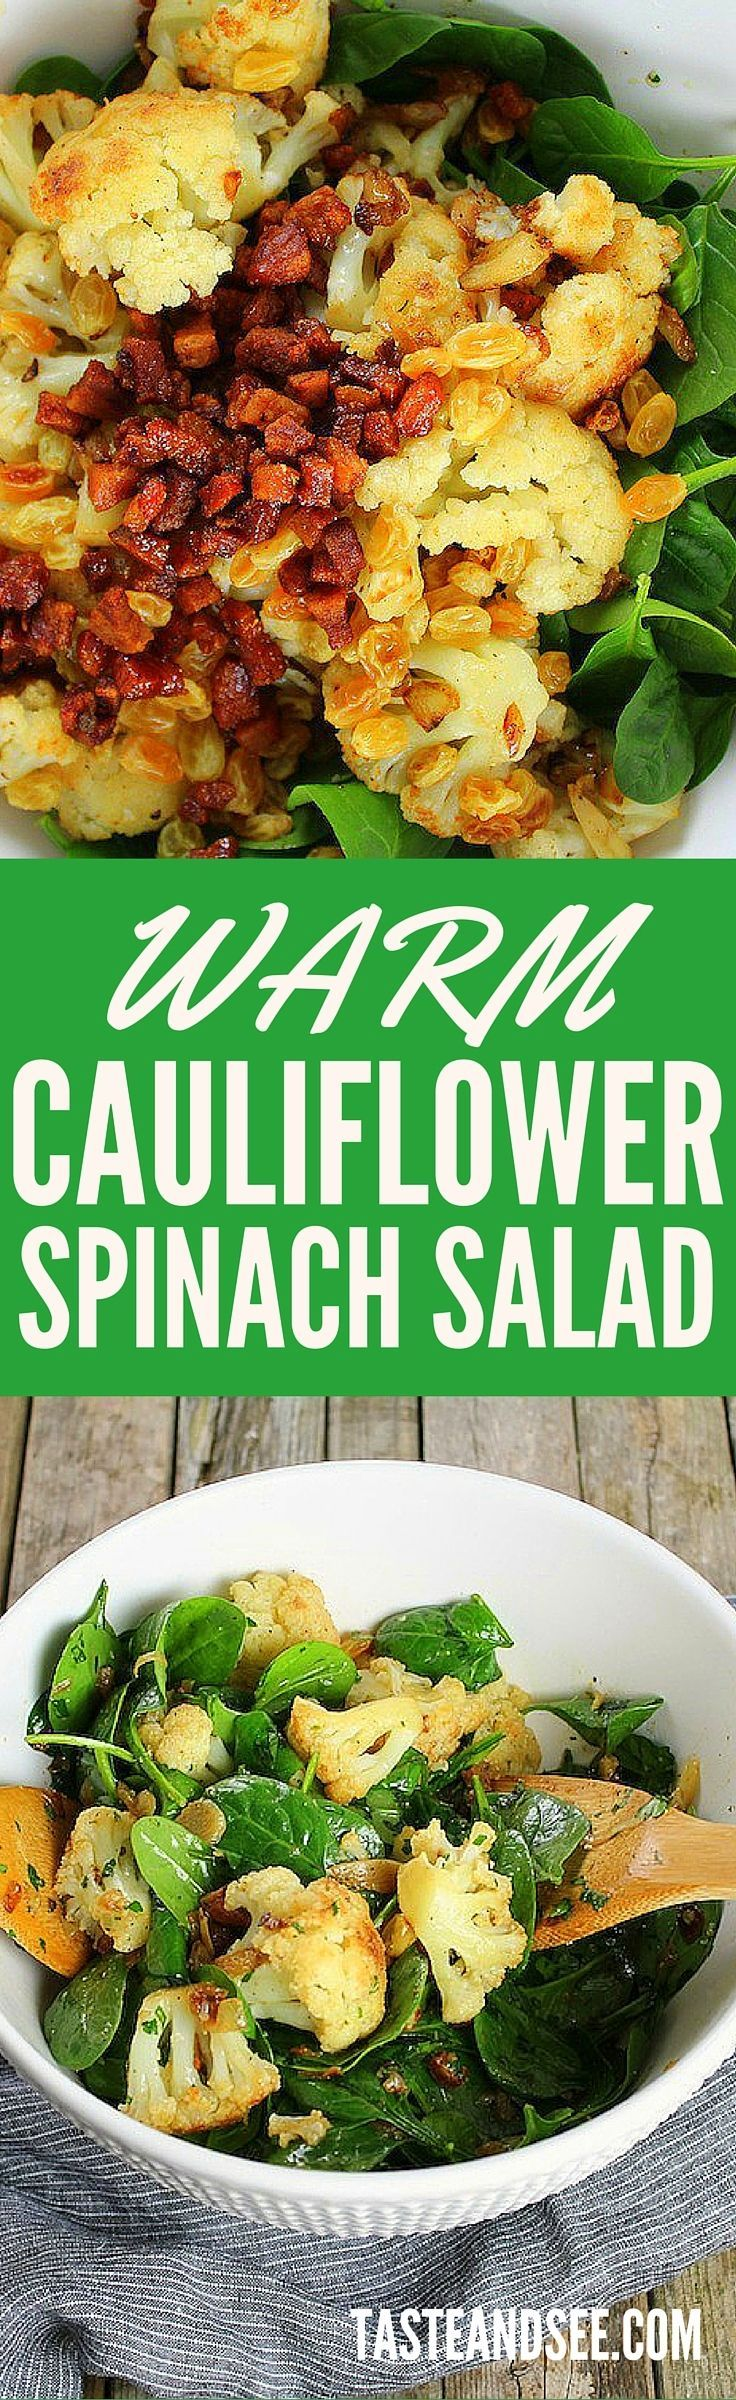 Warm Cauliflower Spinach Salad With Pancetta and Golden Raisins - it's the perfect winter salad... healthy, hearty, and full of flavor!  http://tasteandsee.com